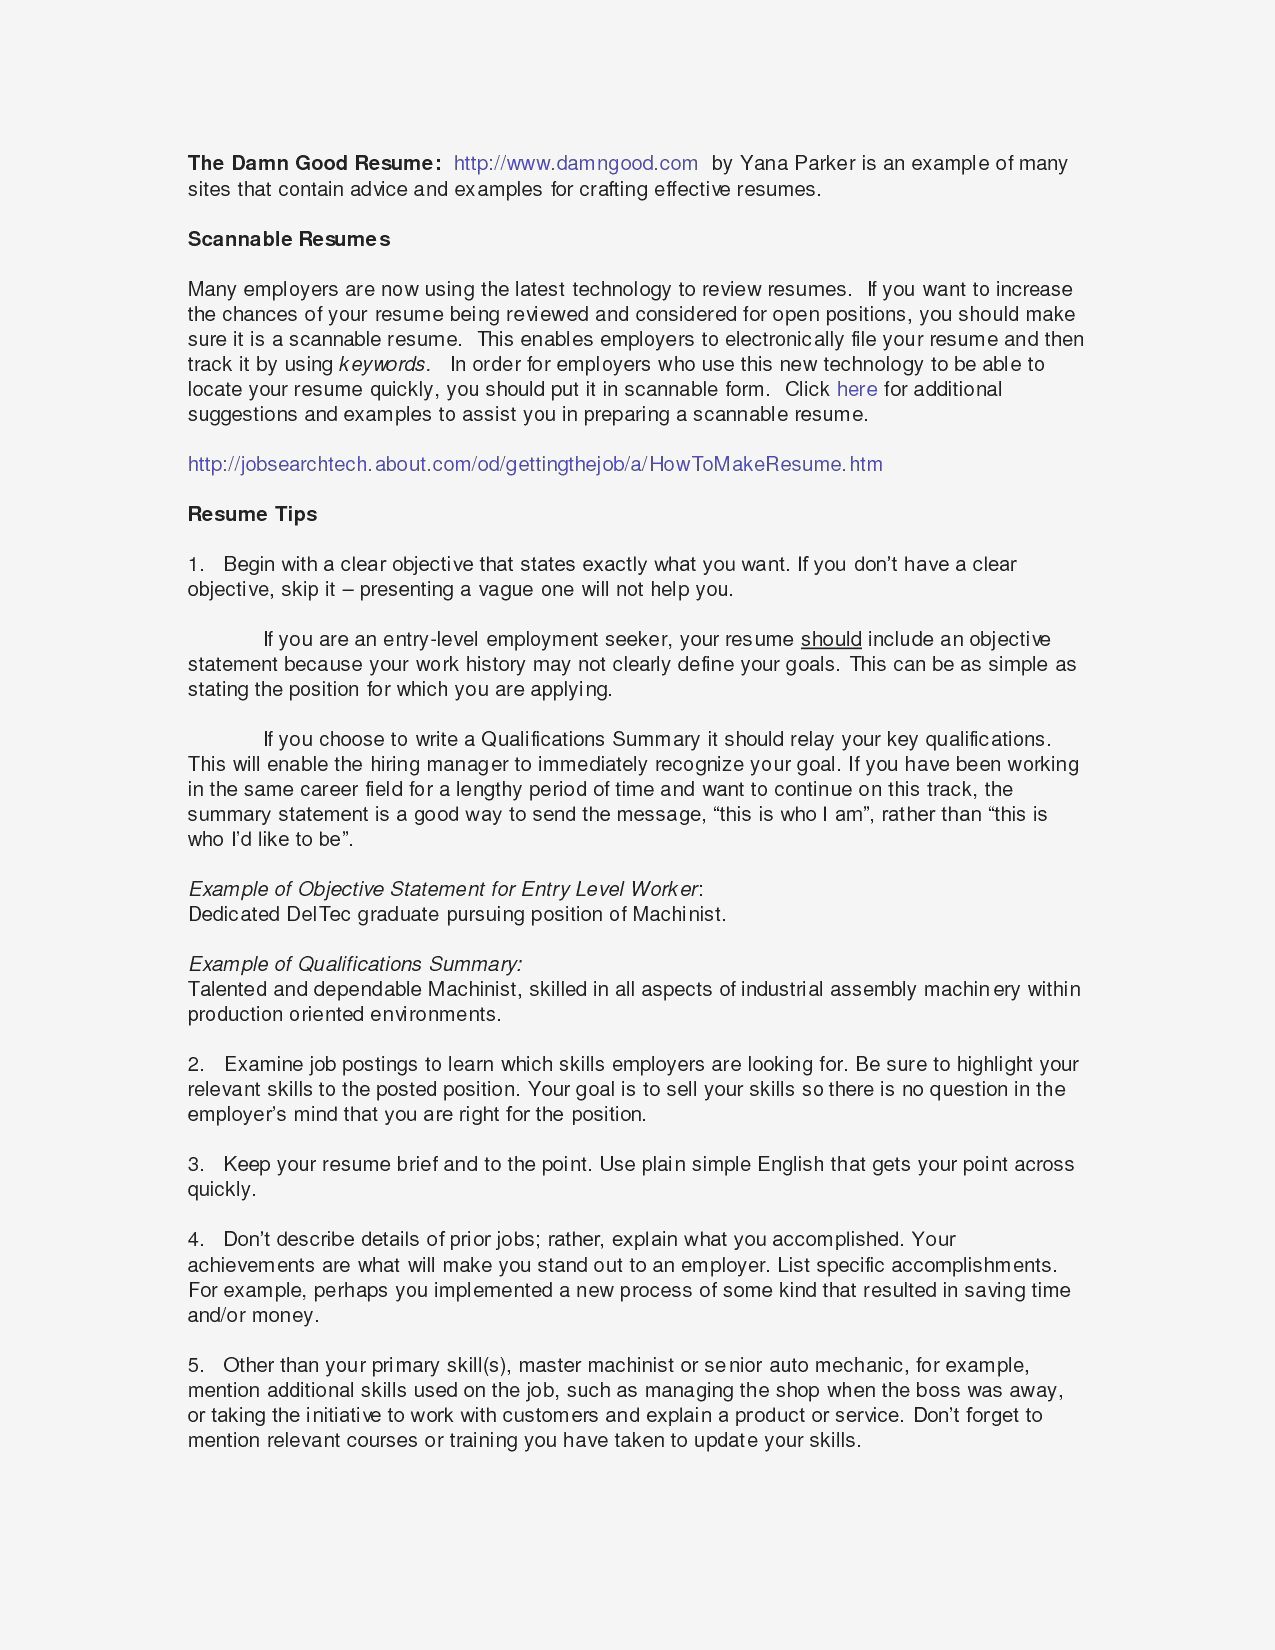 Skills Summary for Resume Examples - Sample Resume Summary Statements